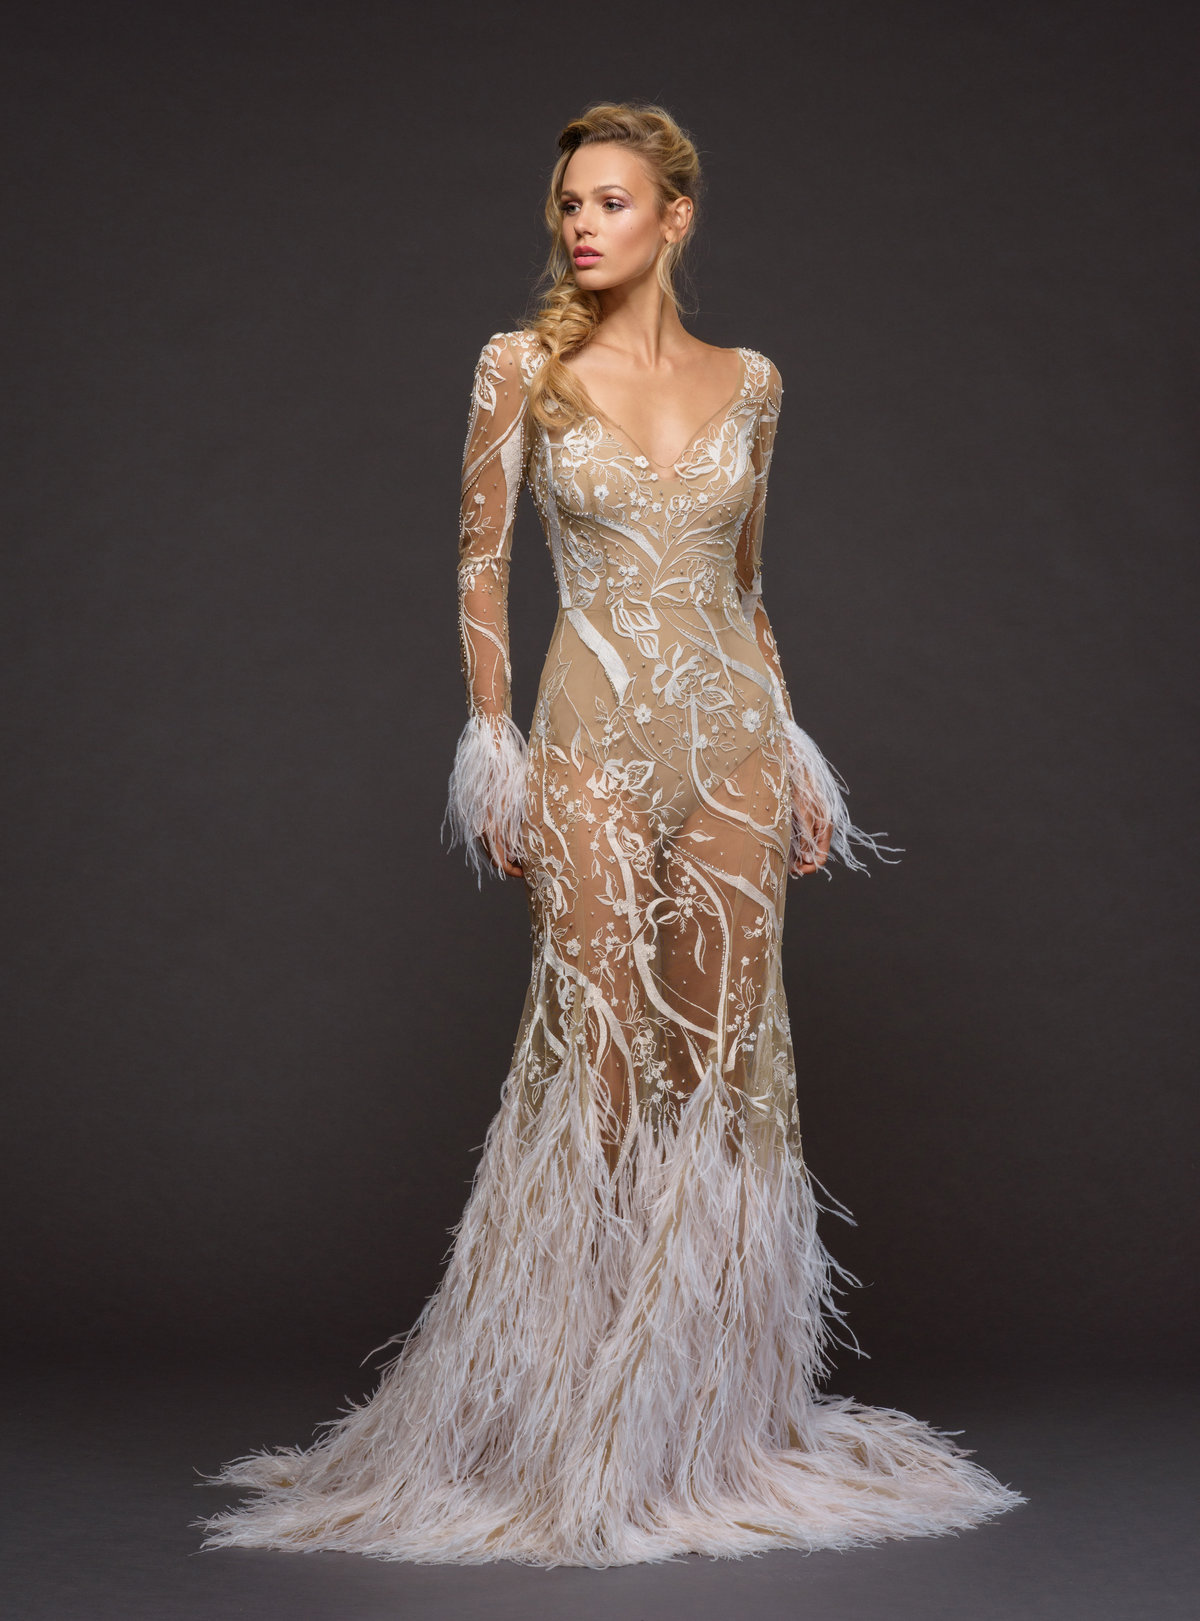 Bridal Gowns And Wedding Dresses By Jlm Couture Style Nash